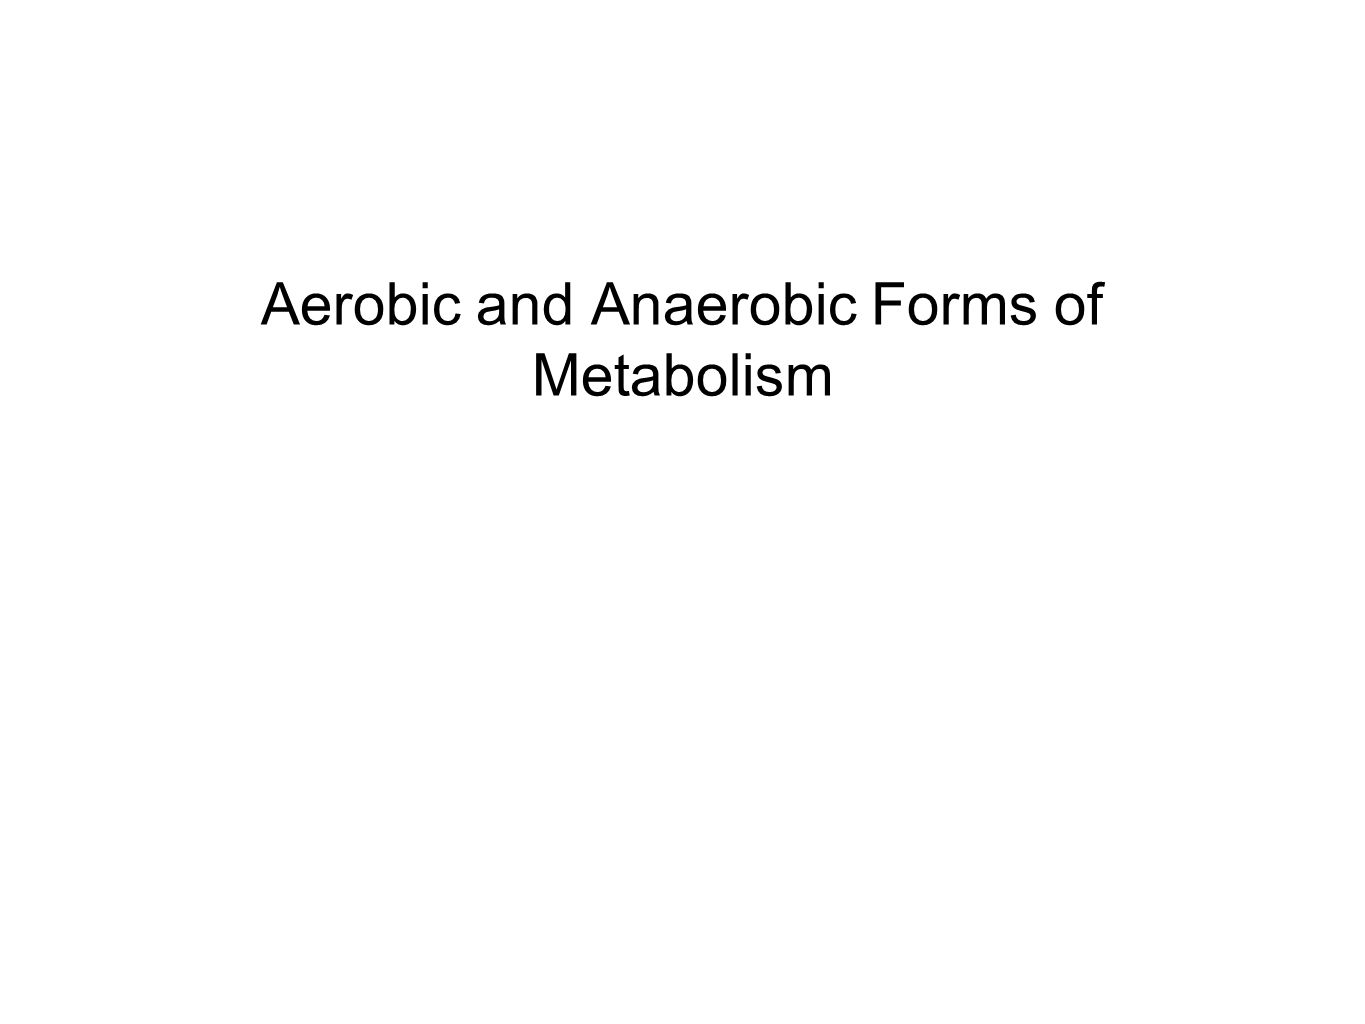 Aerobic and Anaerobic Forms of Metabolism